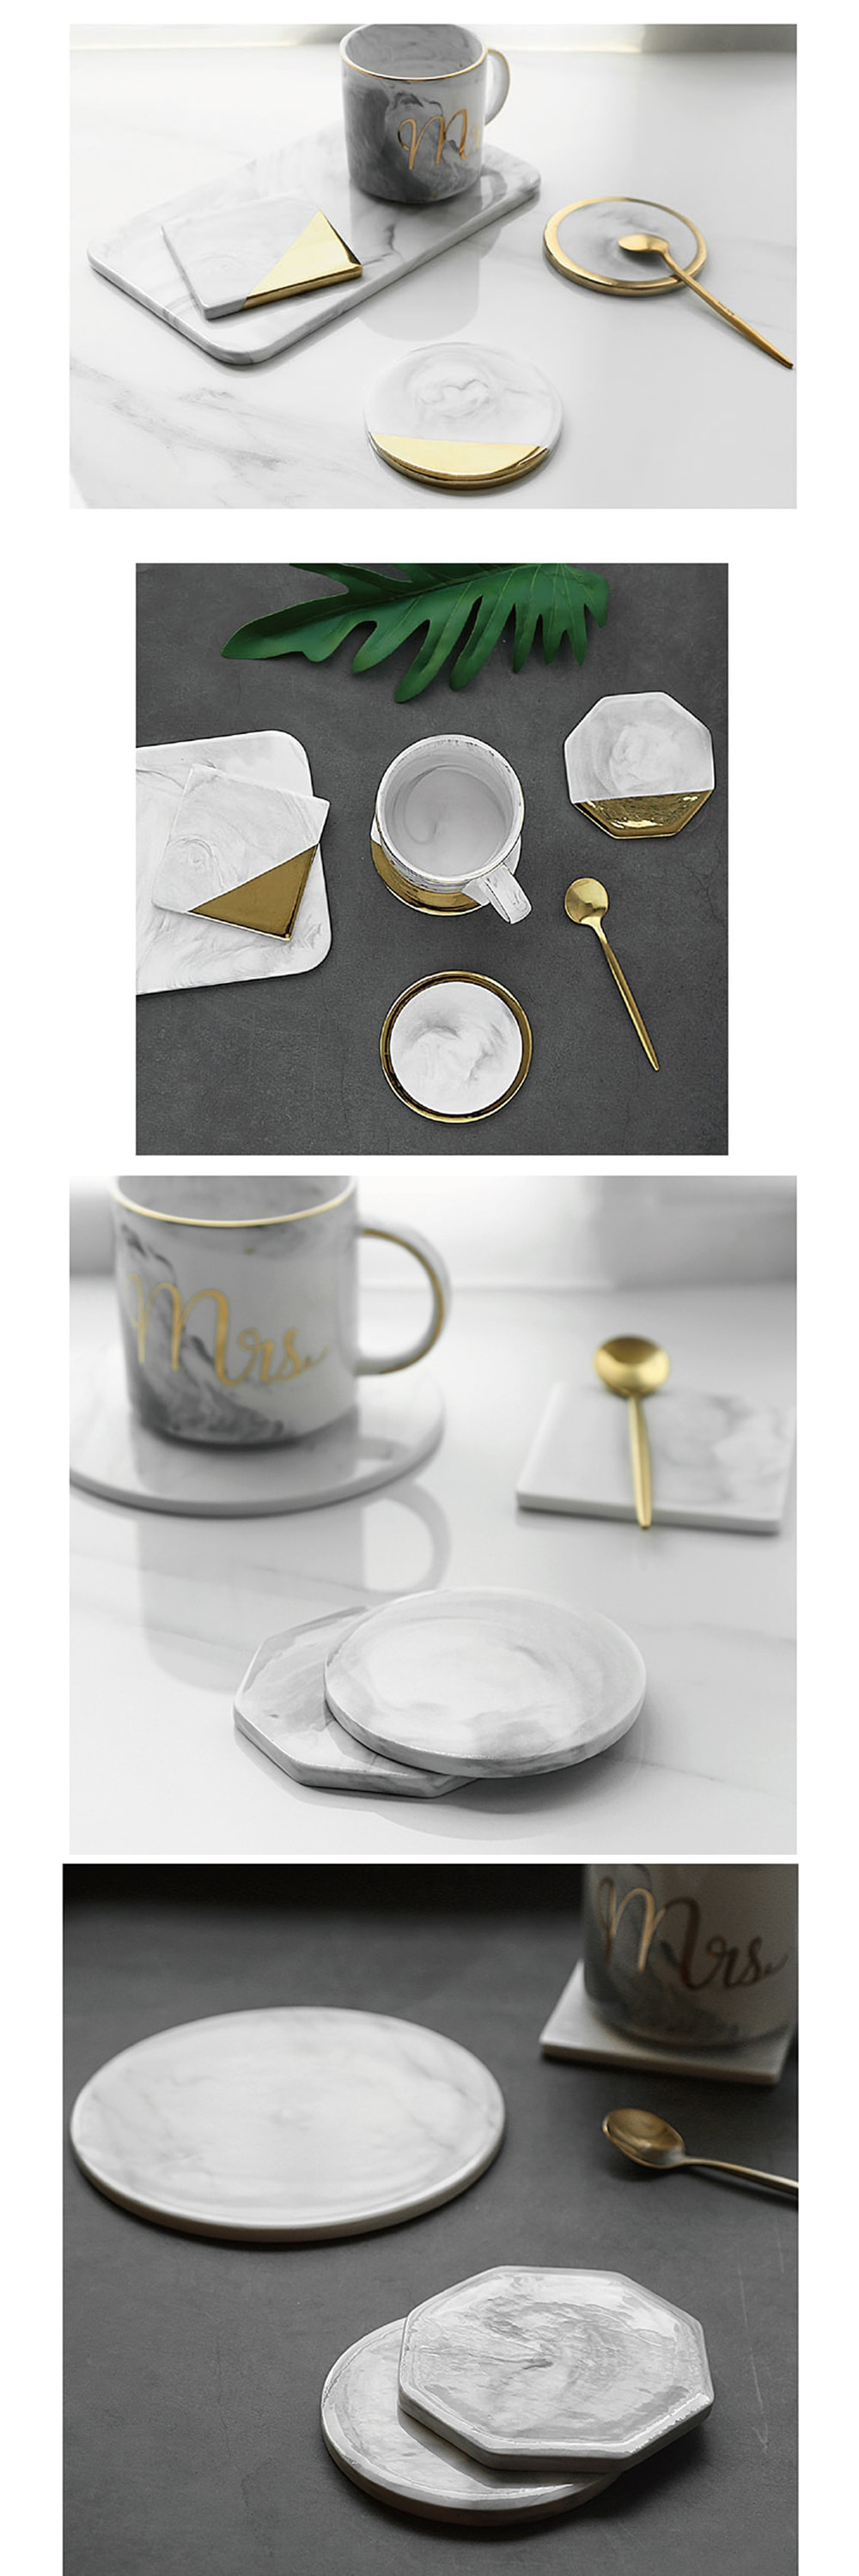 Marble Golden Trim Coaster Get Cool Scandinavian-Style Ceramic Coasters